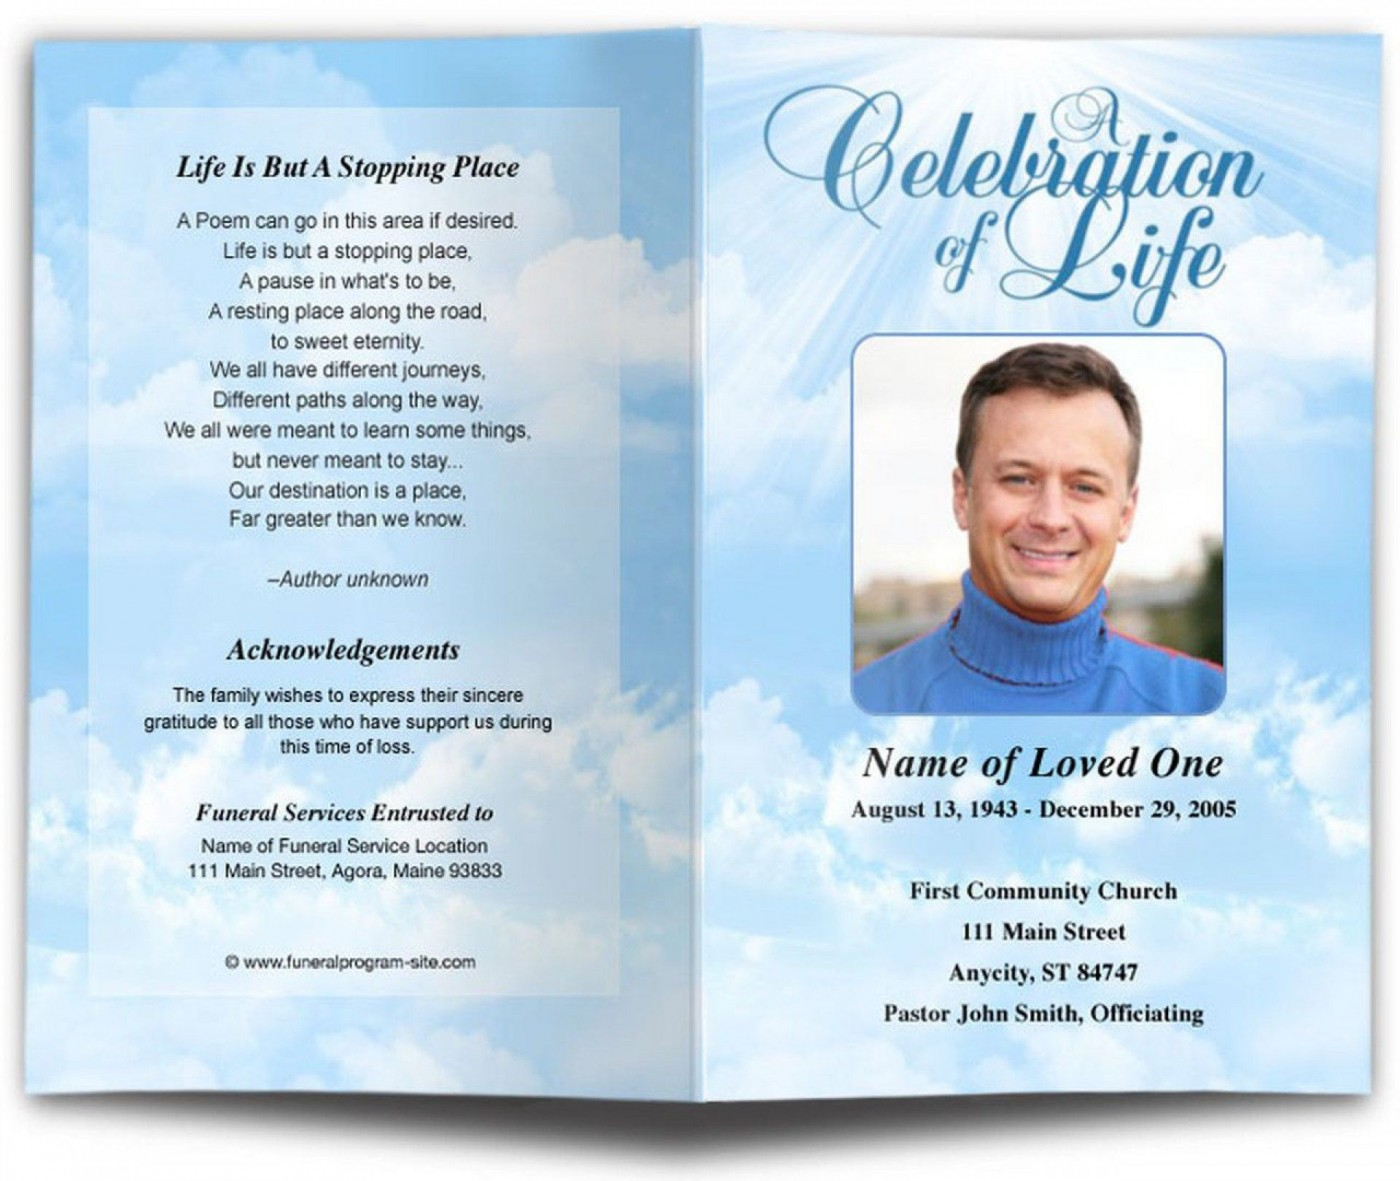 002 Awesome Free Download Template For Funeral Program Image 1400